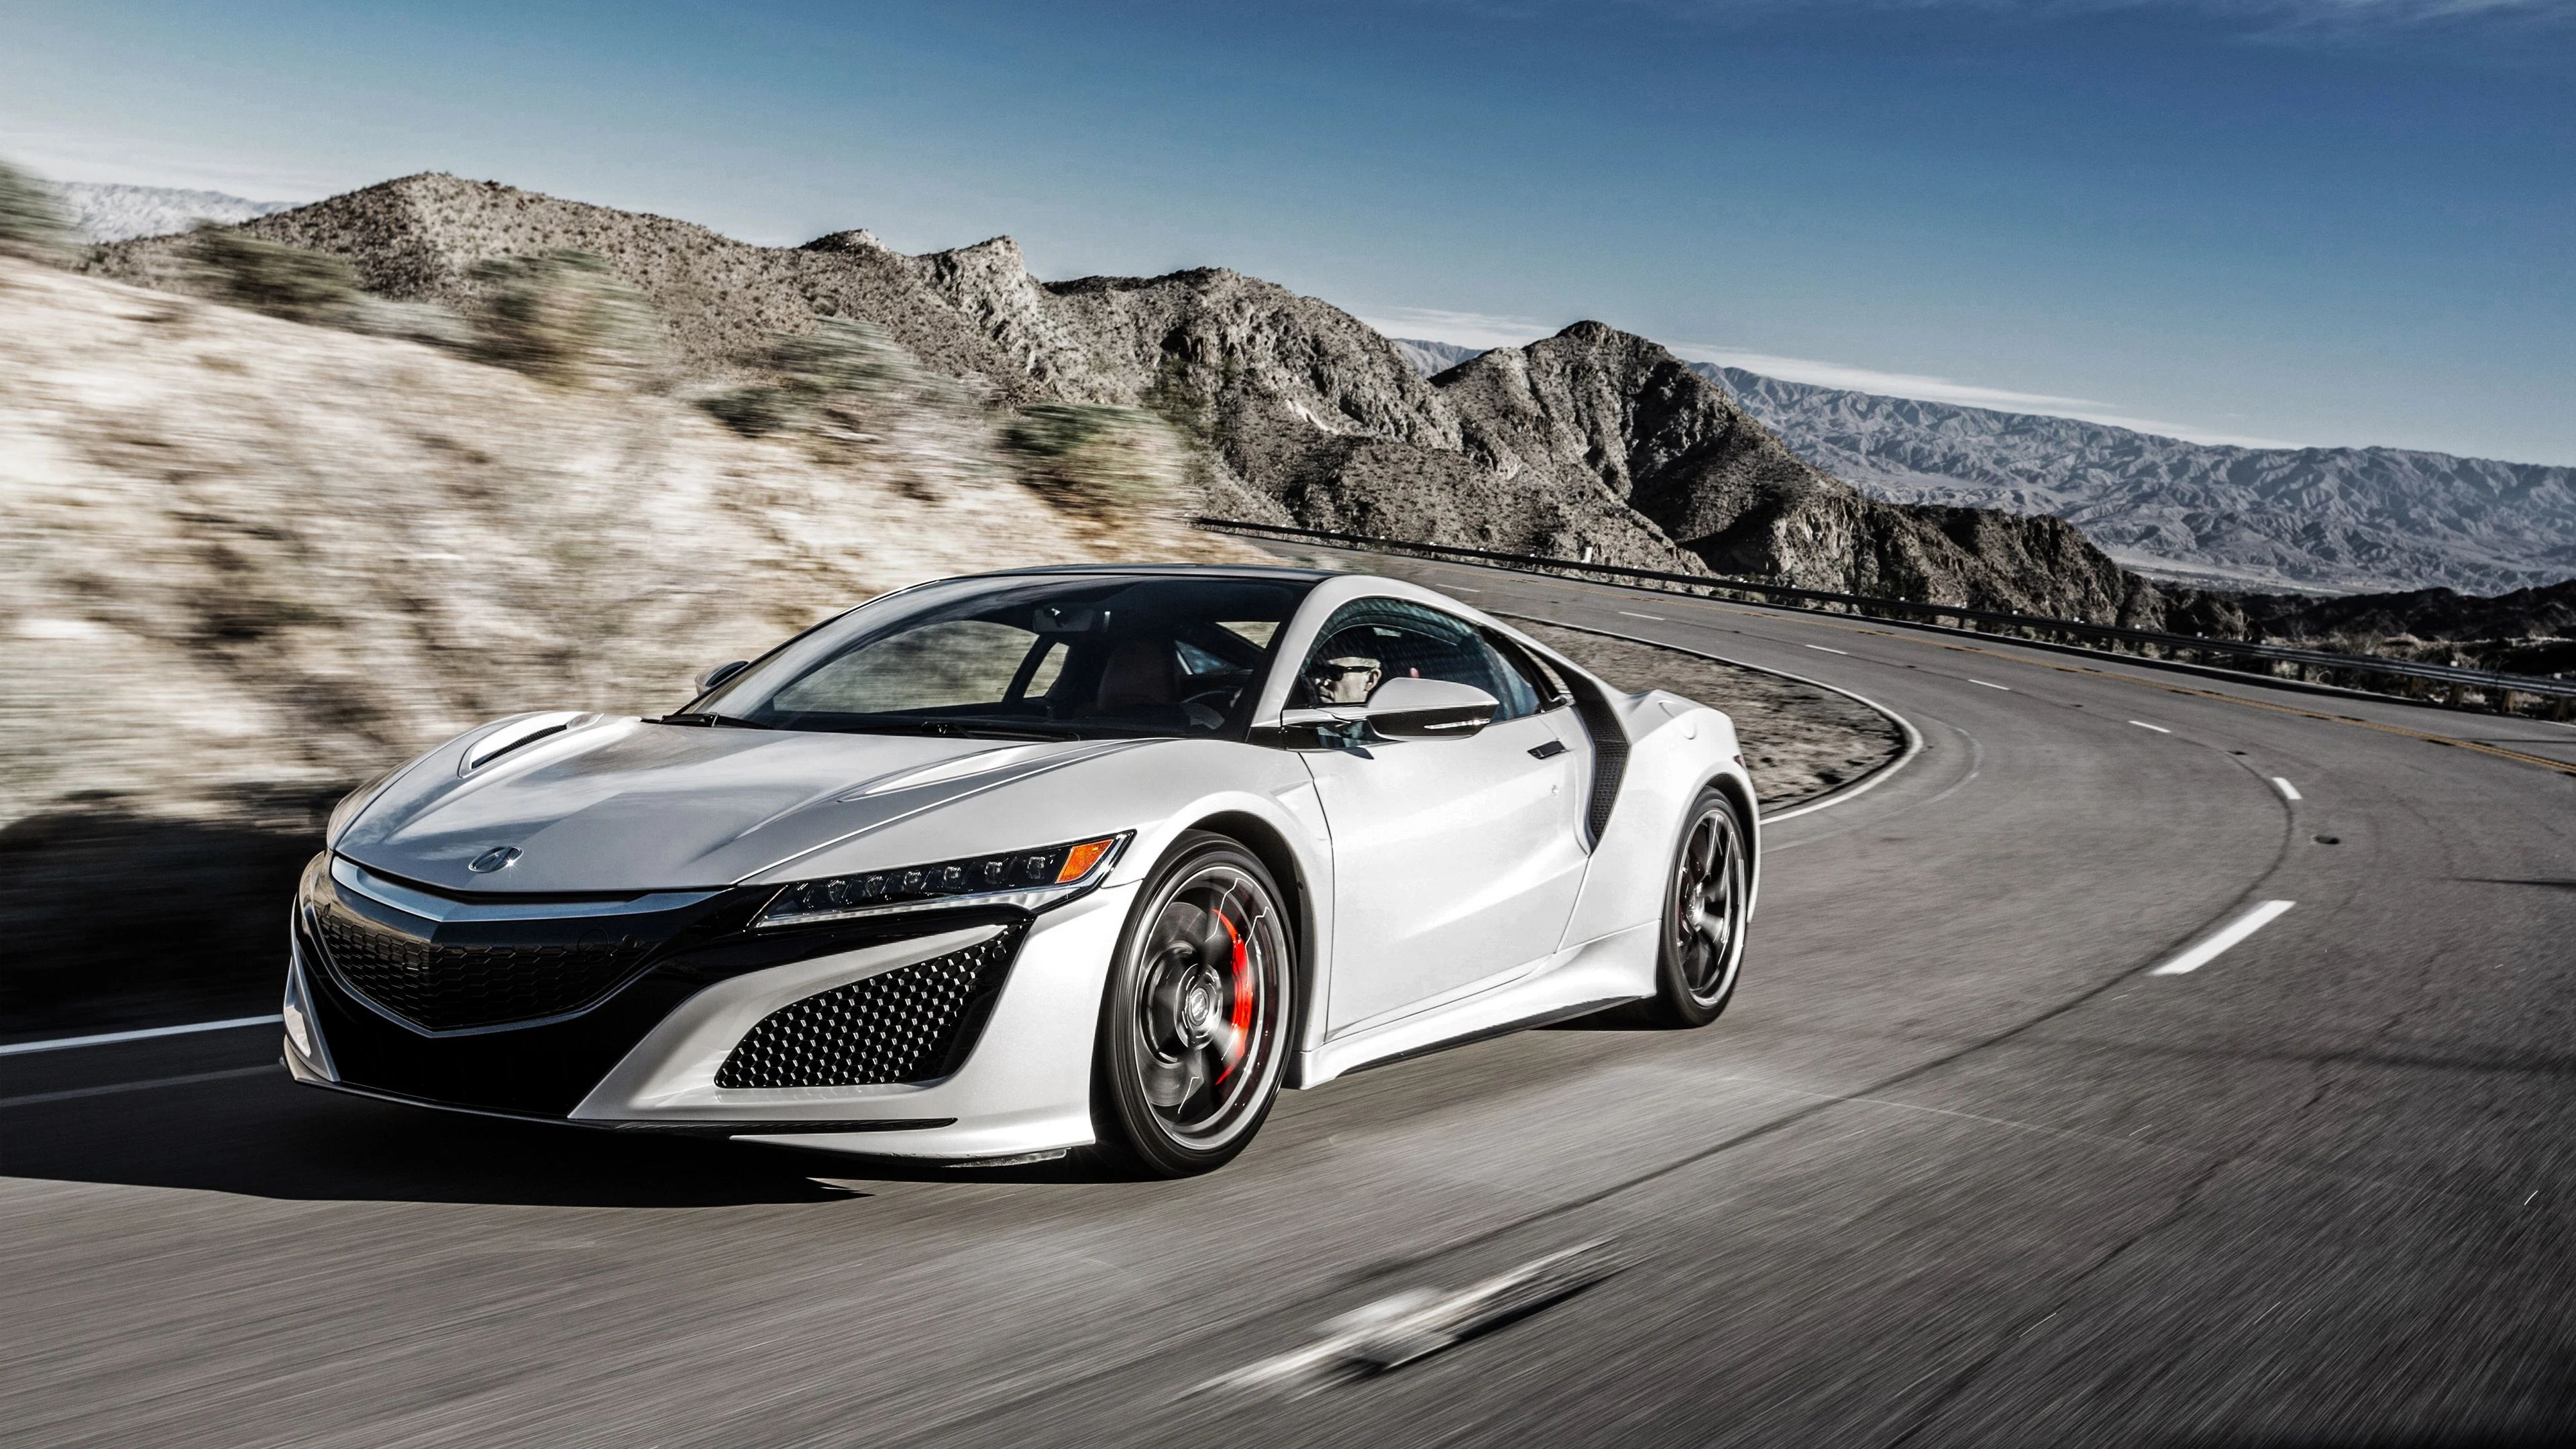 wallpaper acura nsx red 2017 4k automotive cars 9583